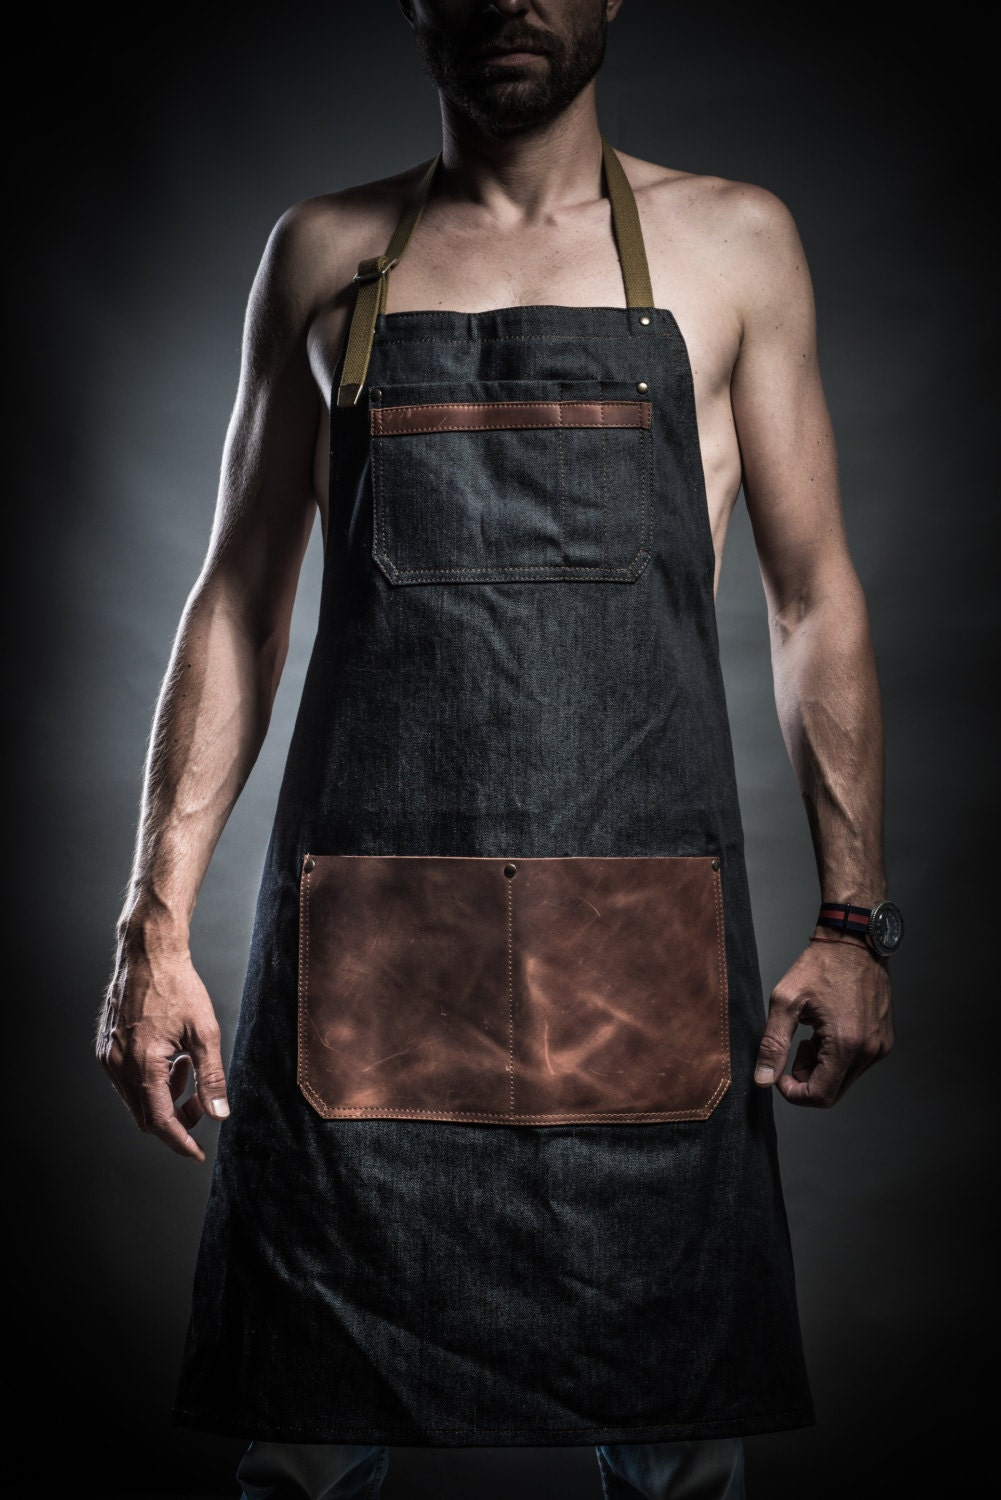 Denim Apron With Leather Pockets And Military Belts By Kruk